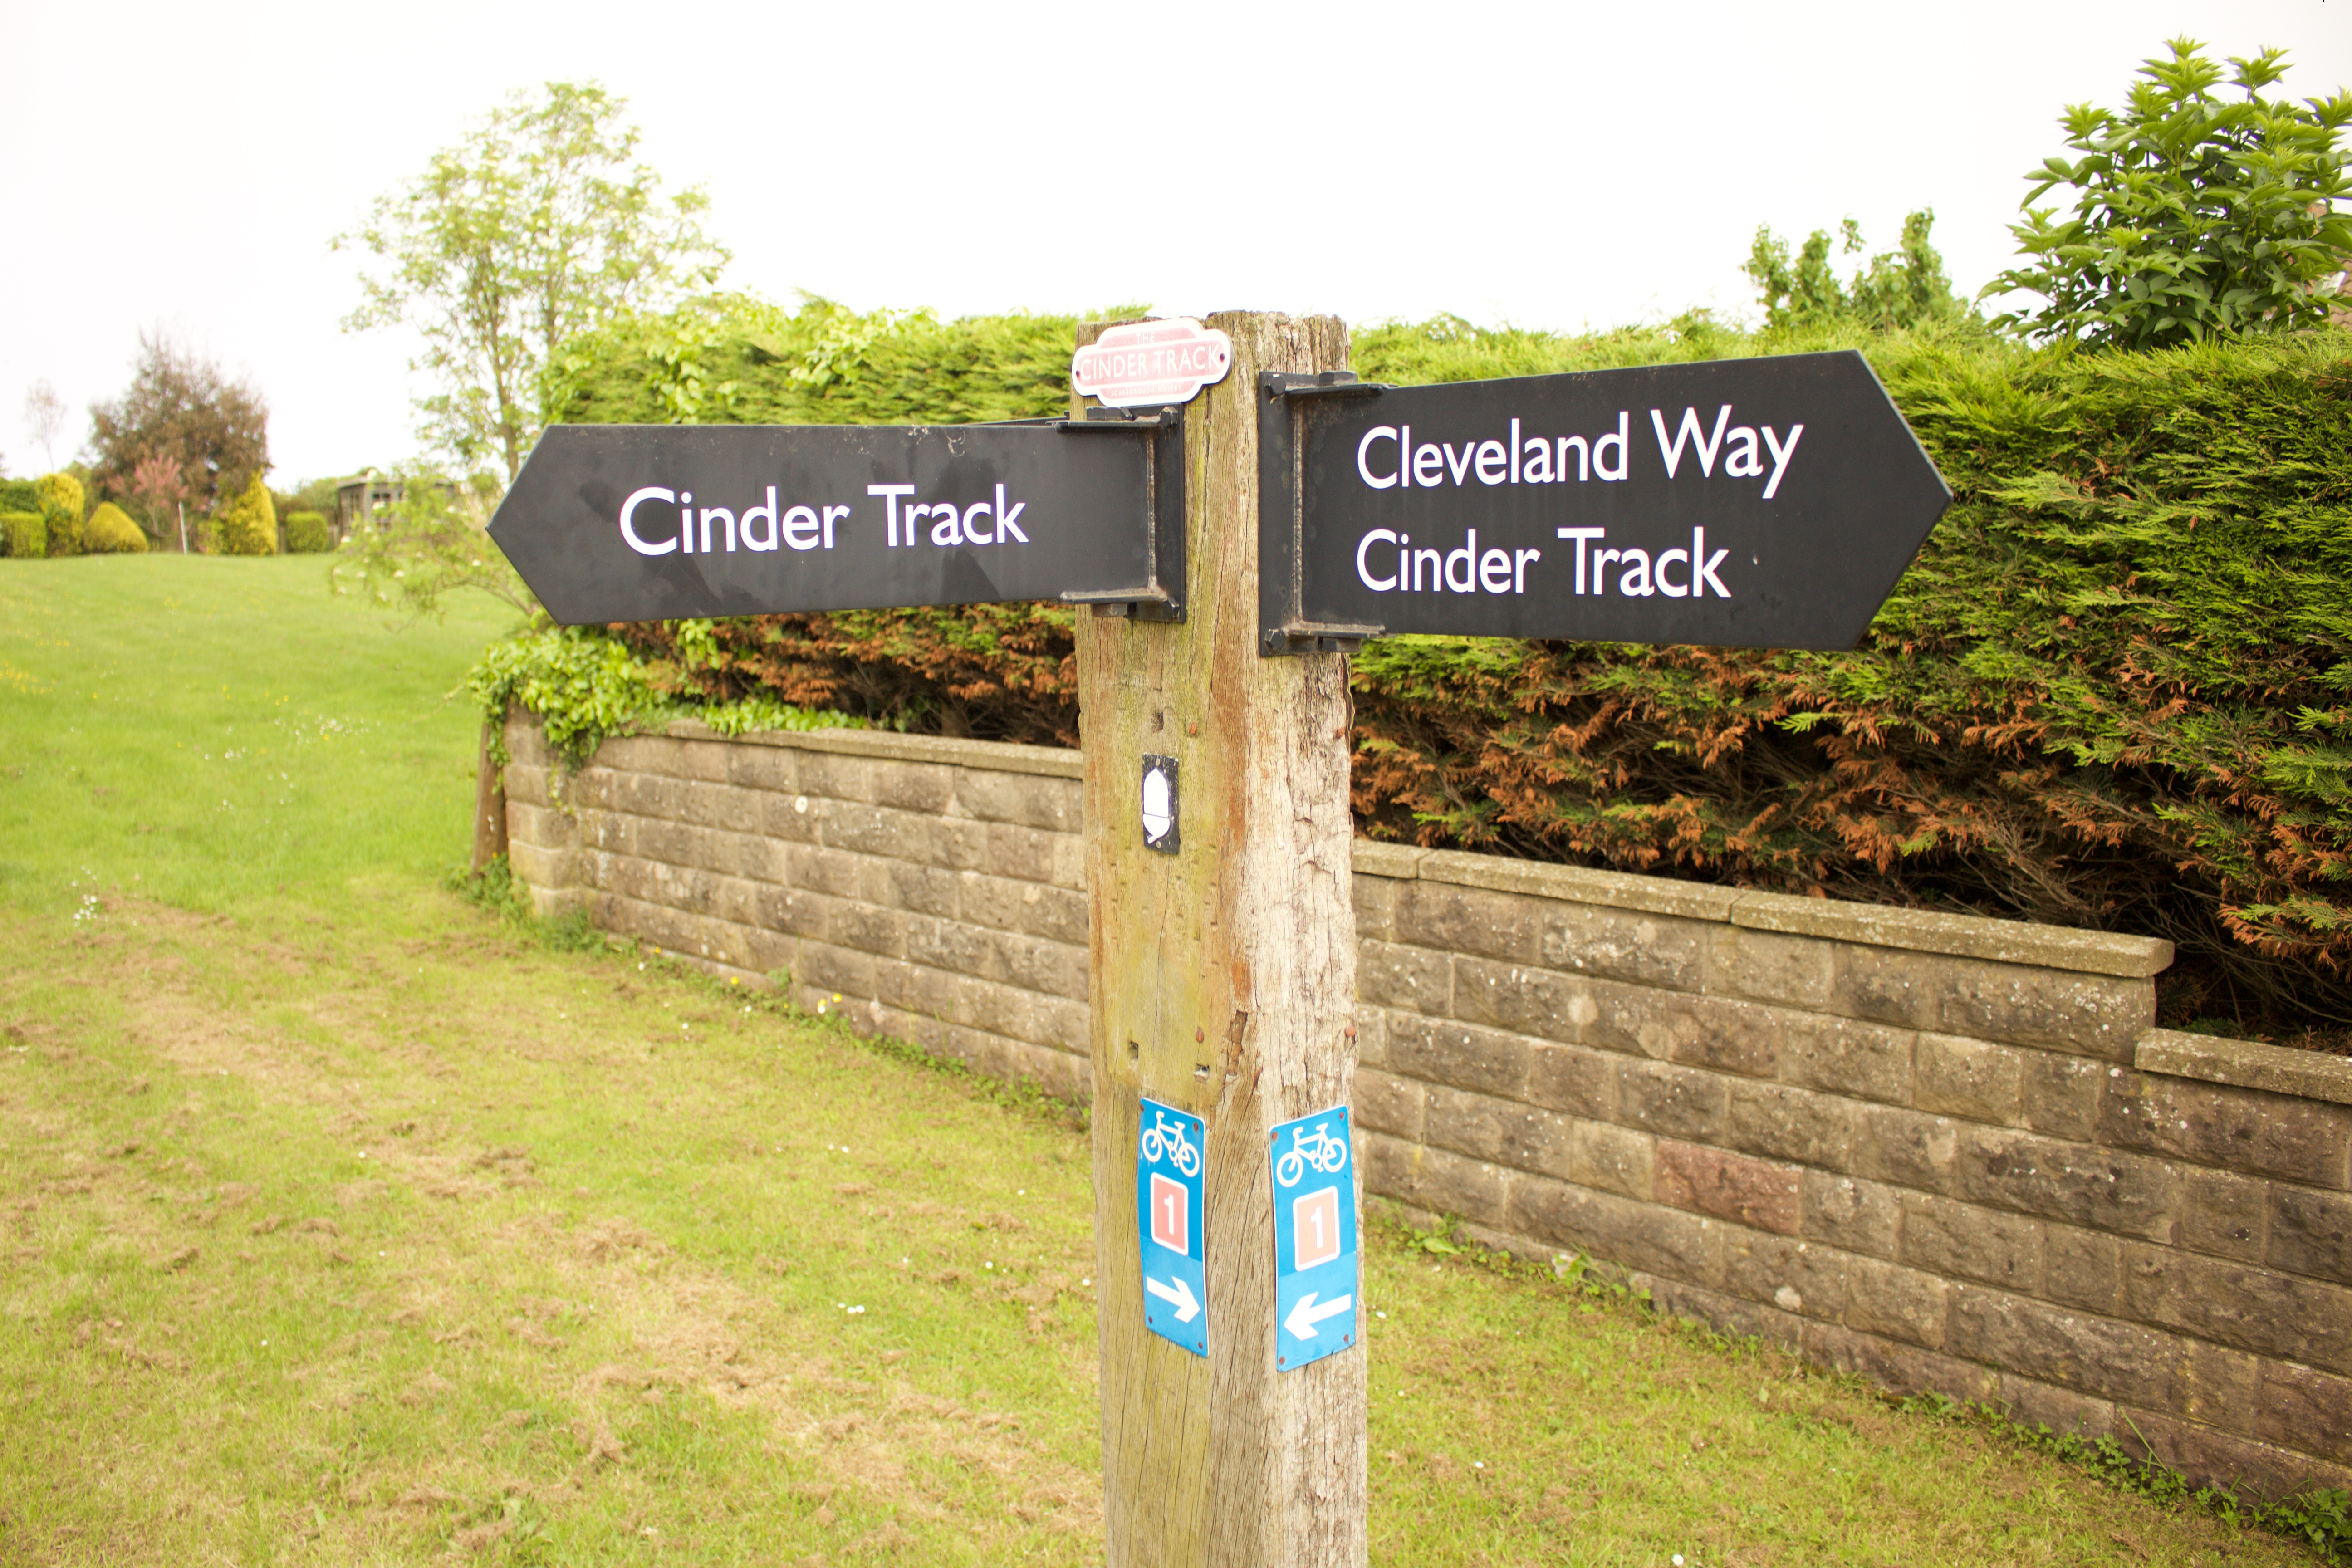 The cycle and walking trails